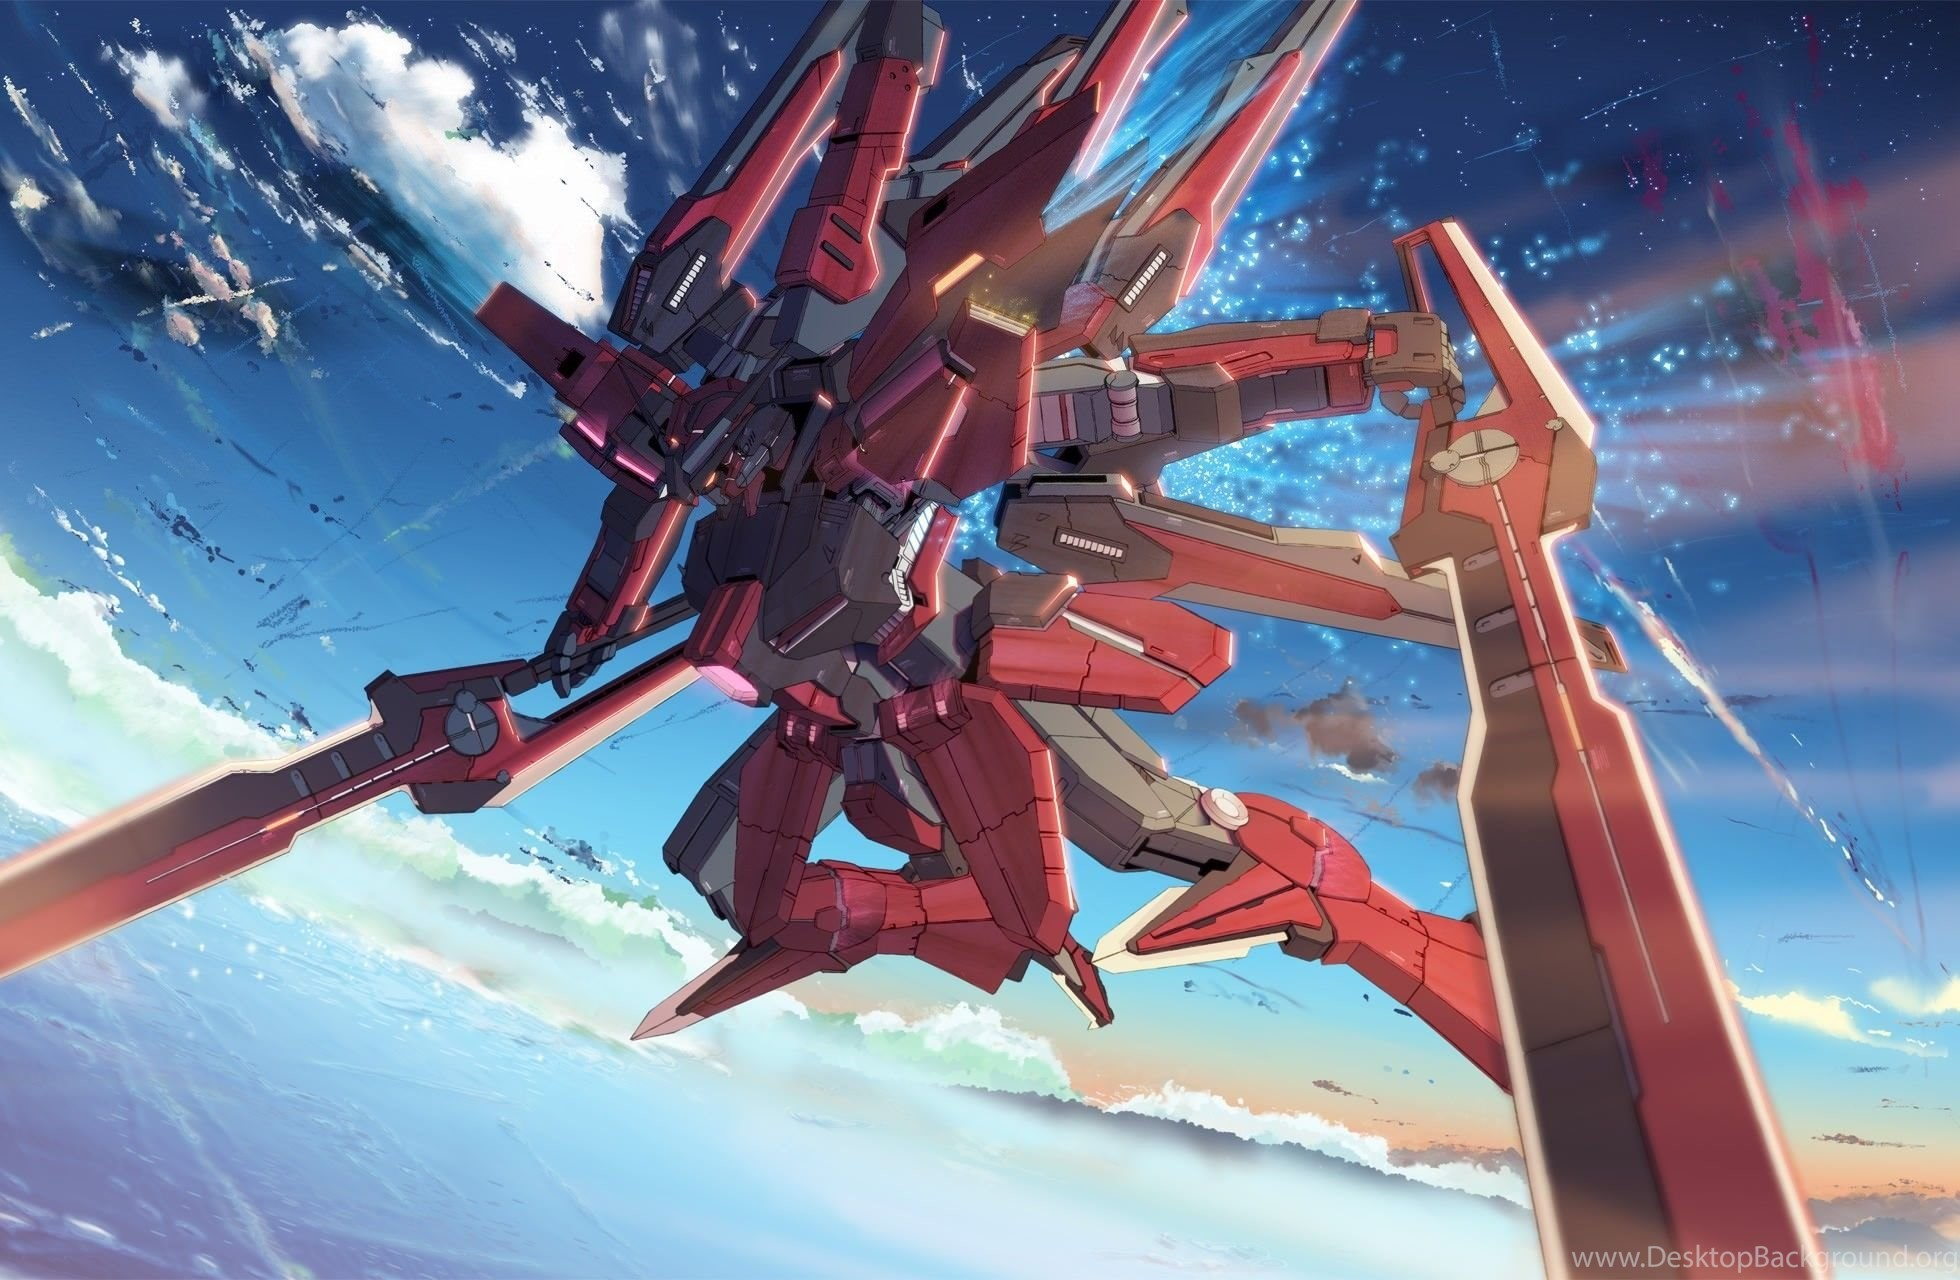 1960x1280 Mecha Gundam Wing Anime Skyscapes Wallpapers